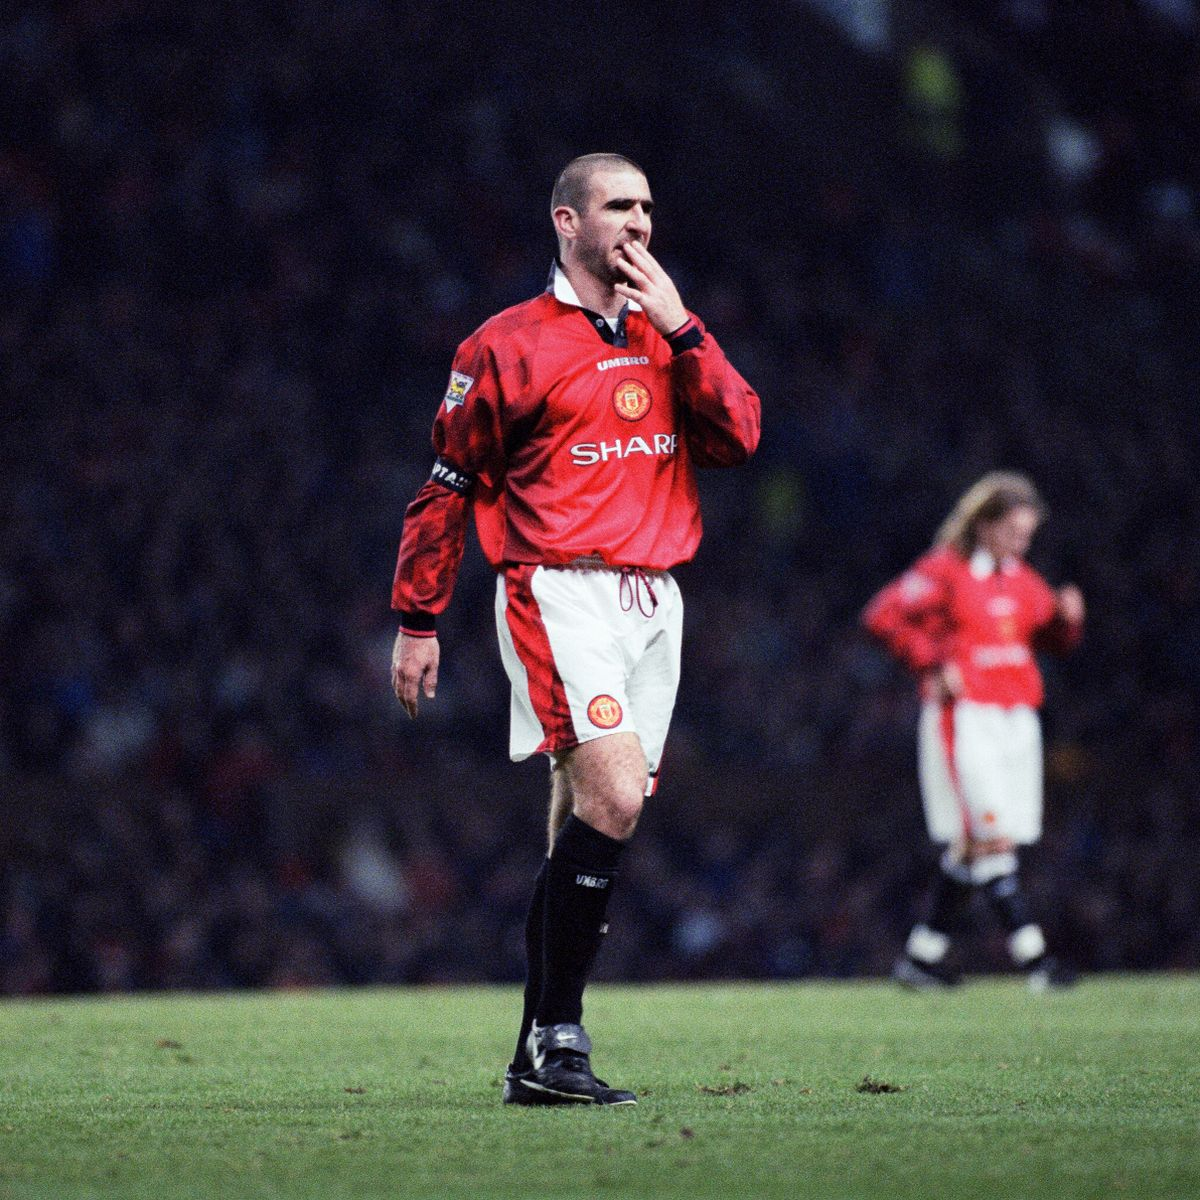 Manchester united eric cantona 7 black away shirt. Eric Cantona Gets In My All Time Man United Side Team Mates Discuss French Maverick 20 Years After Retirement Mirror Online